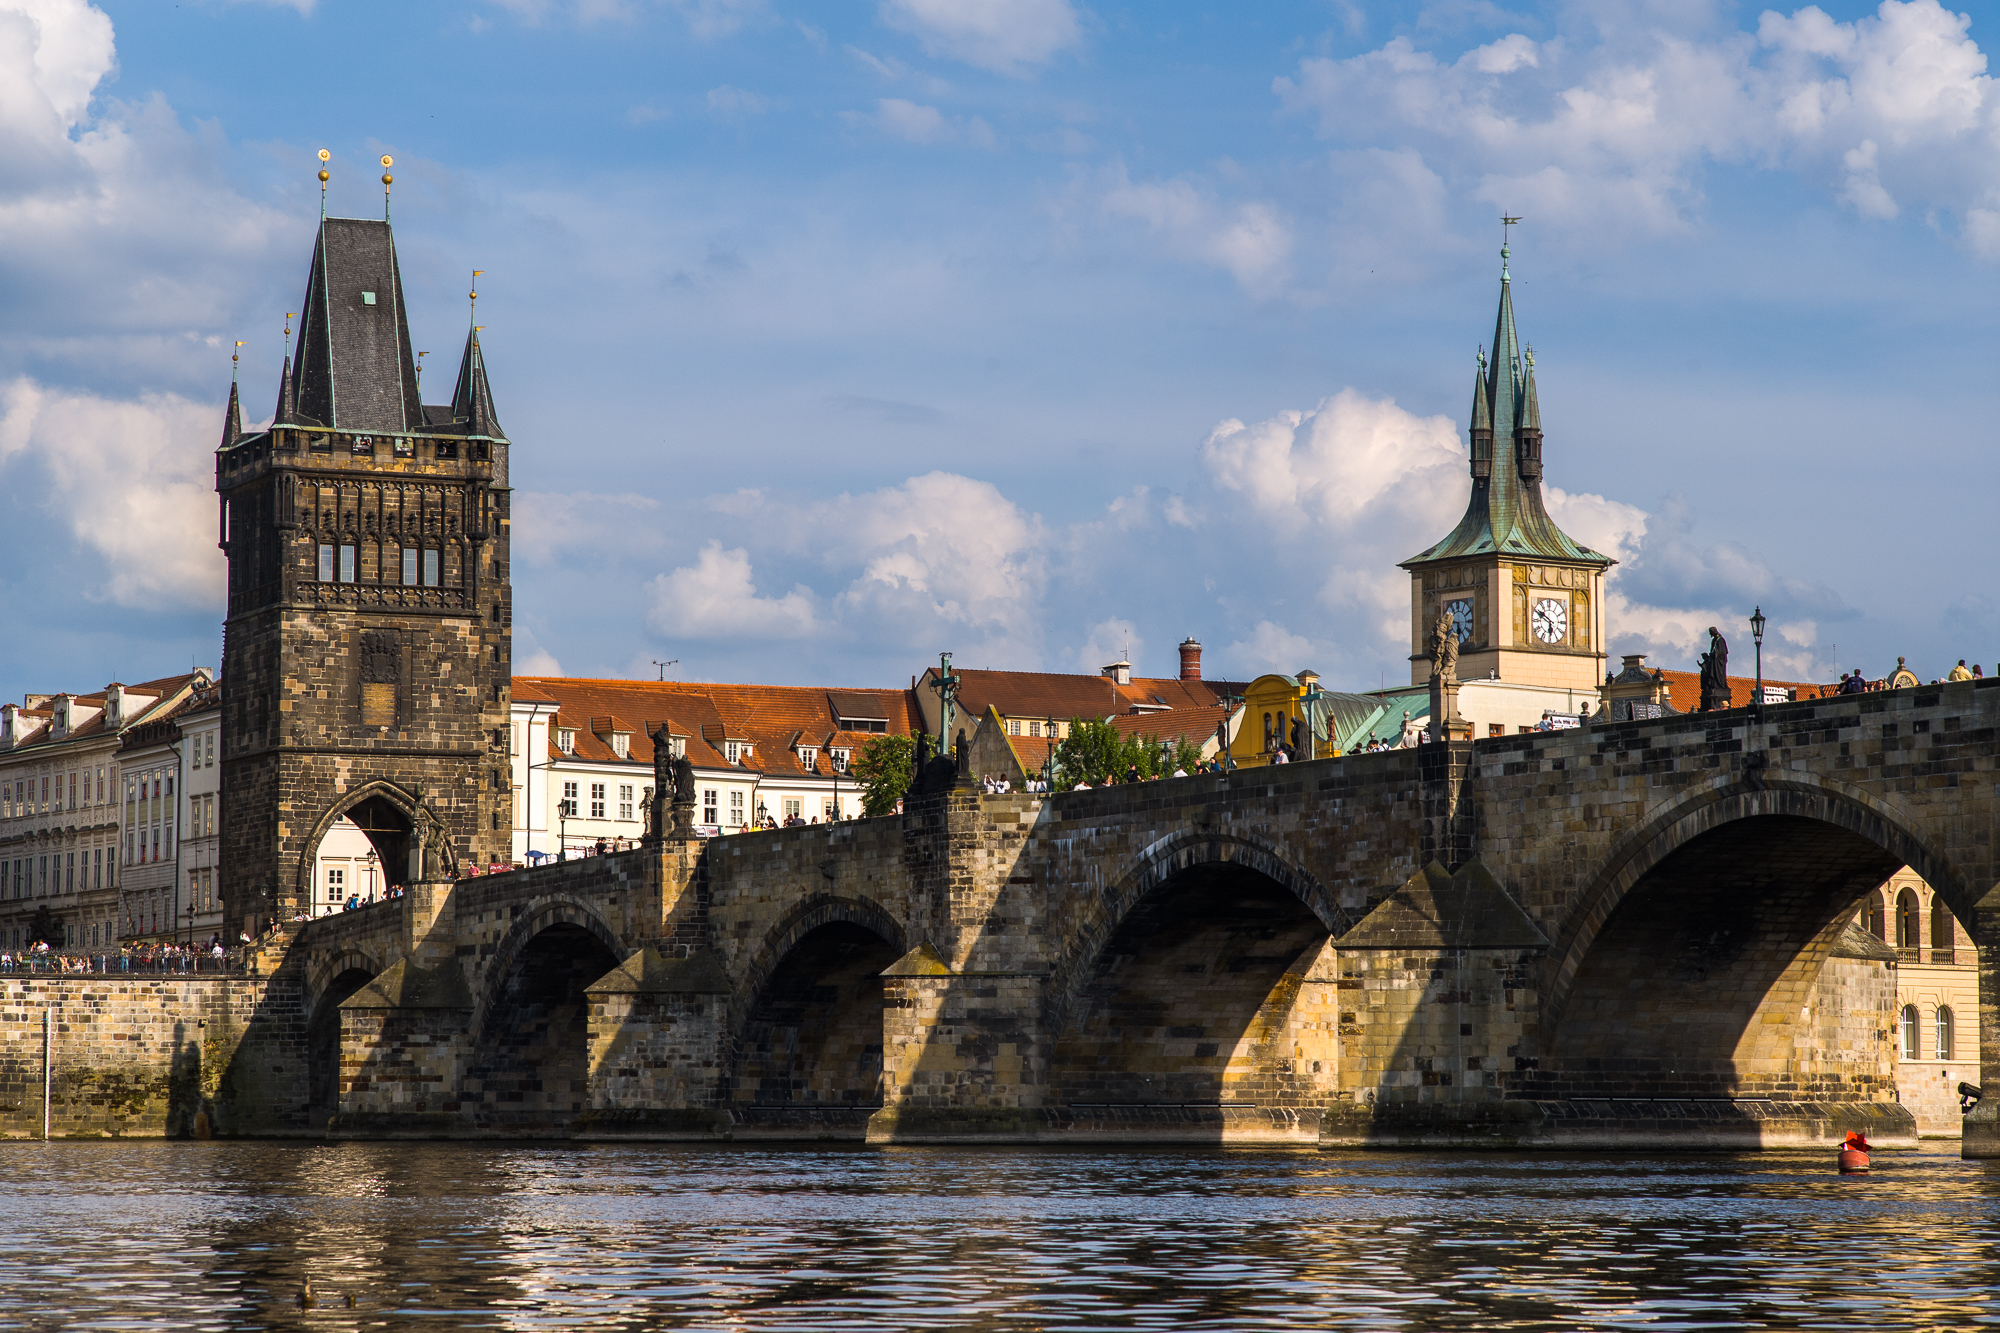 Charles Bridge seen from a boat on the Vltava River